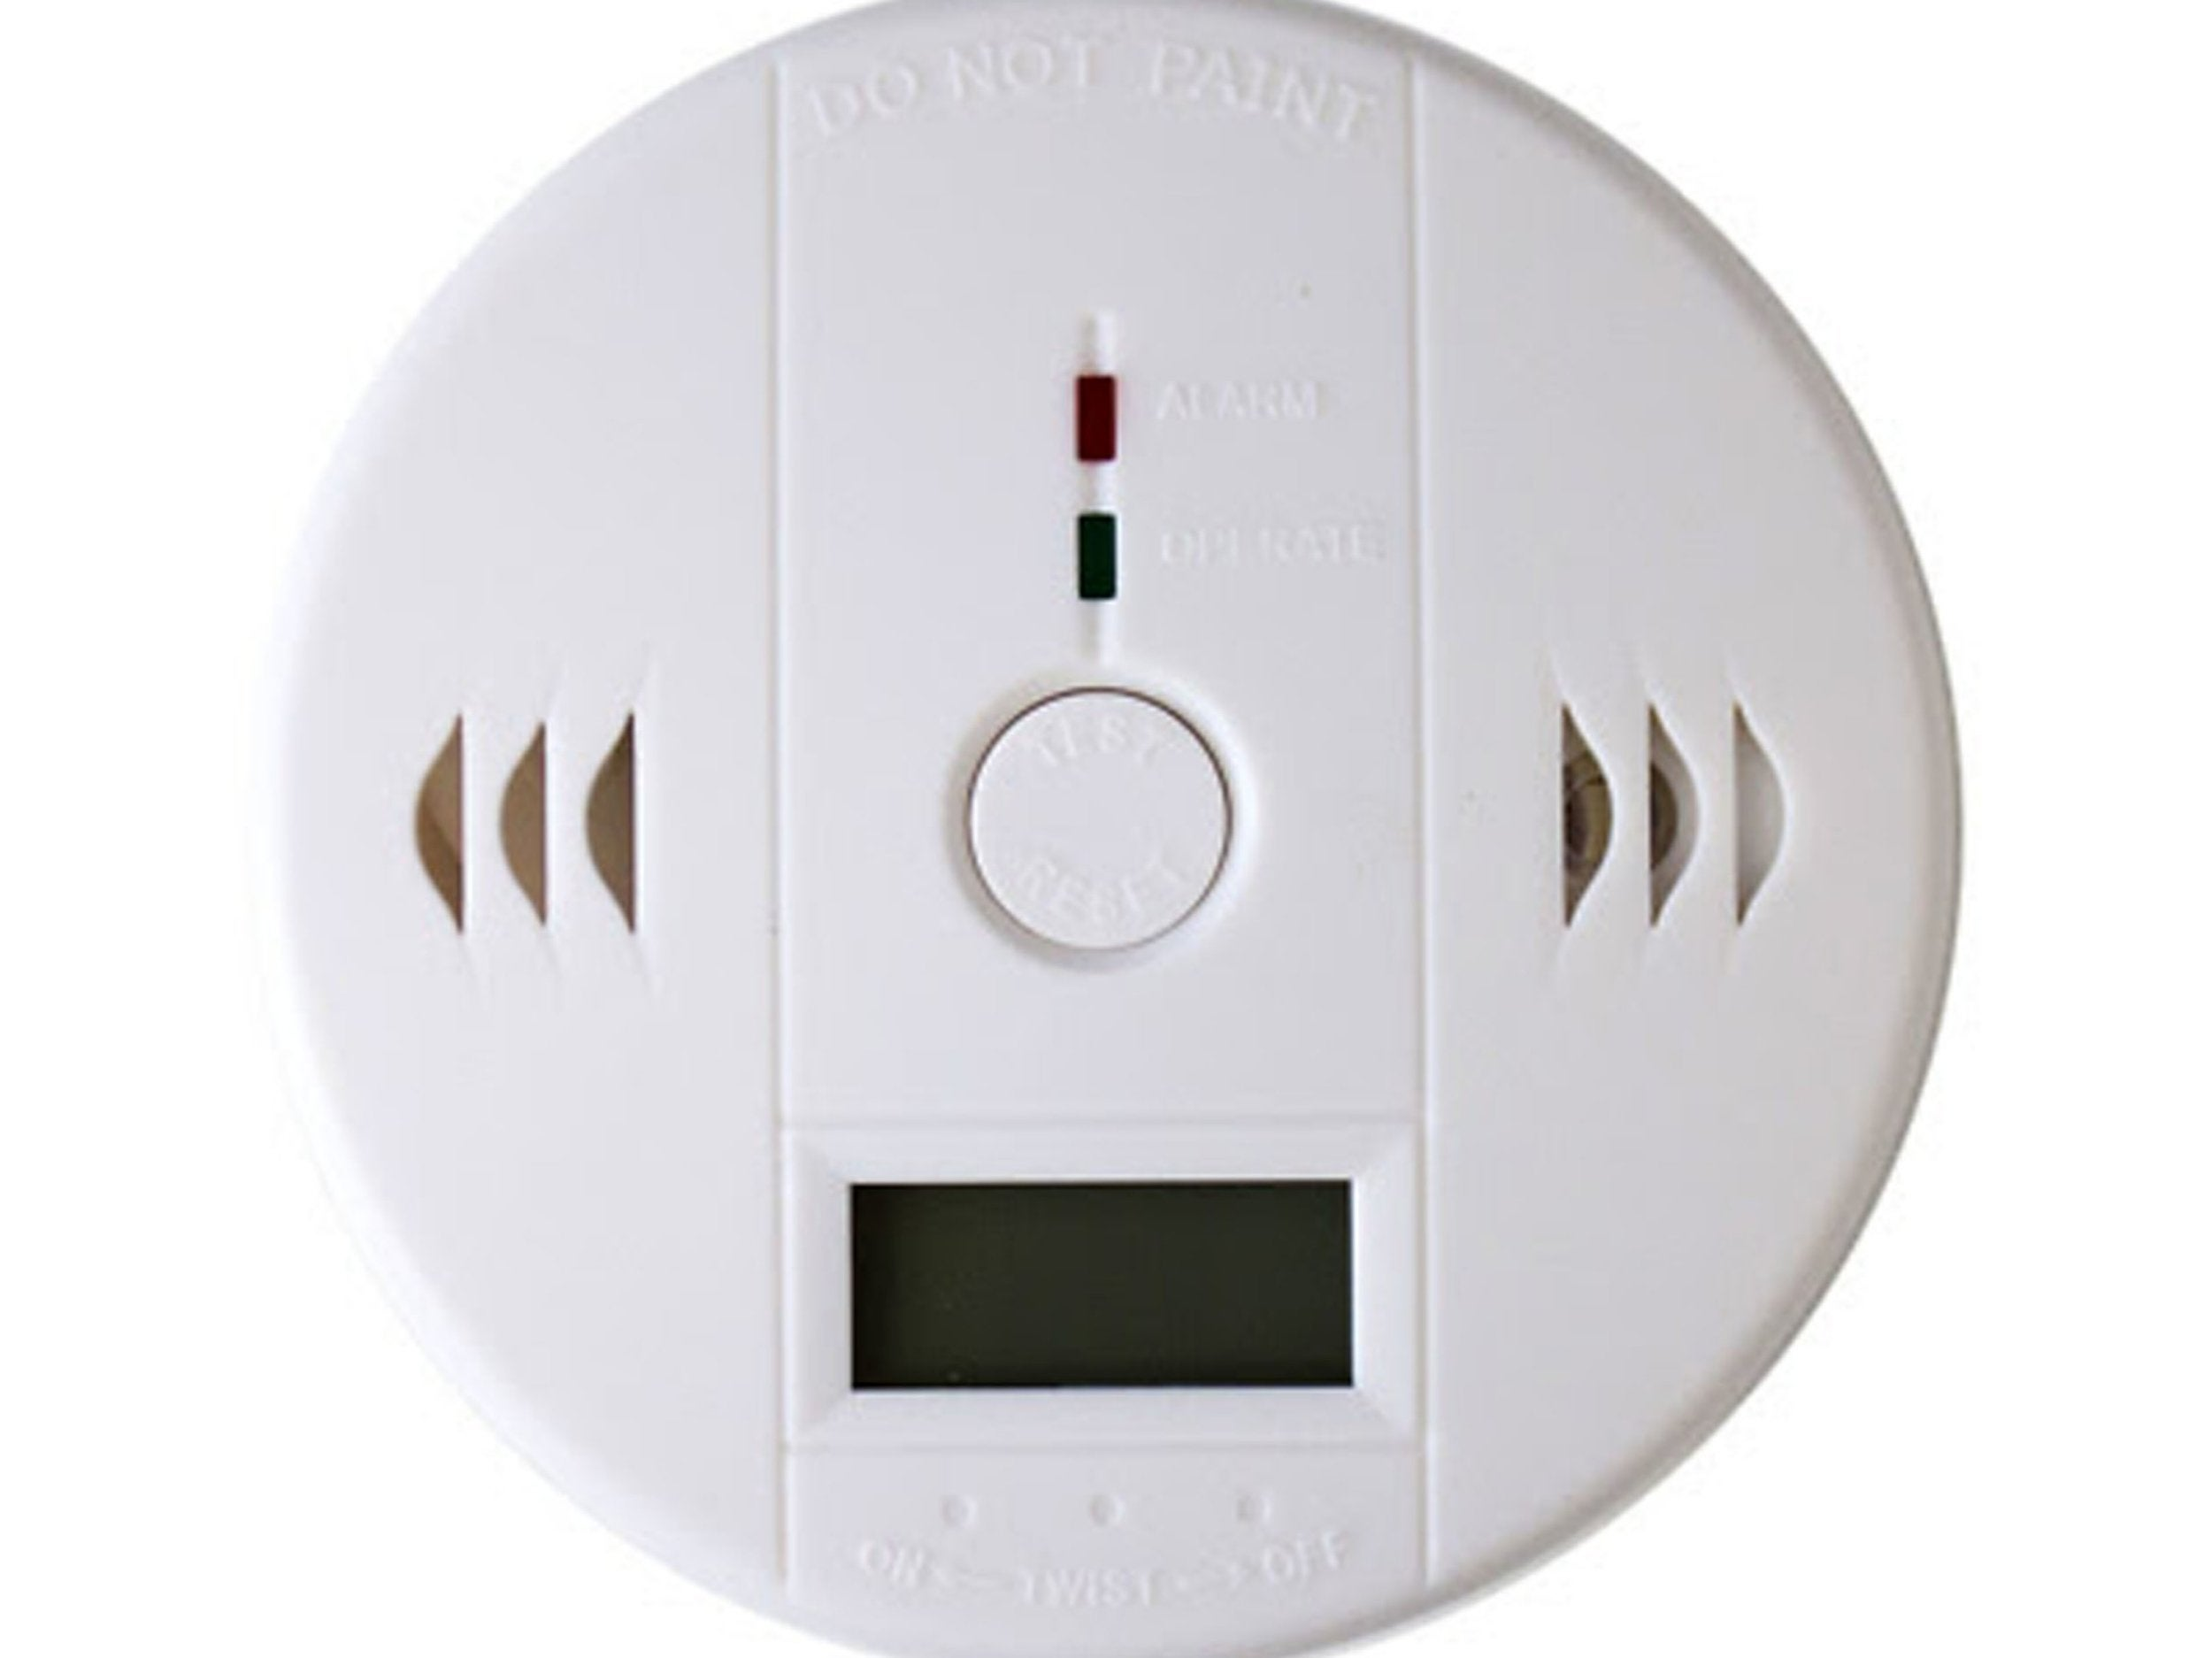 Alarm Smoke and Carbon Monoxide Alarm